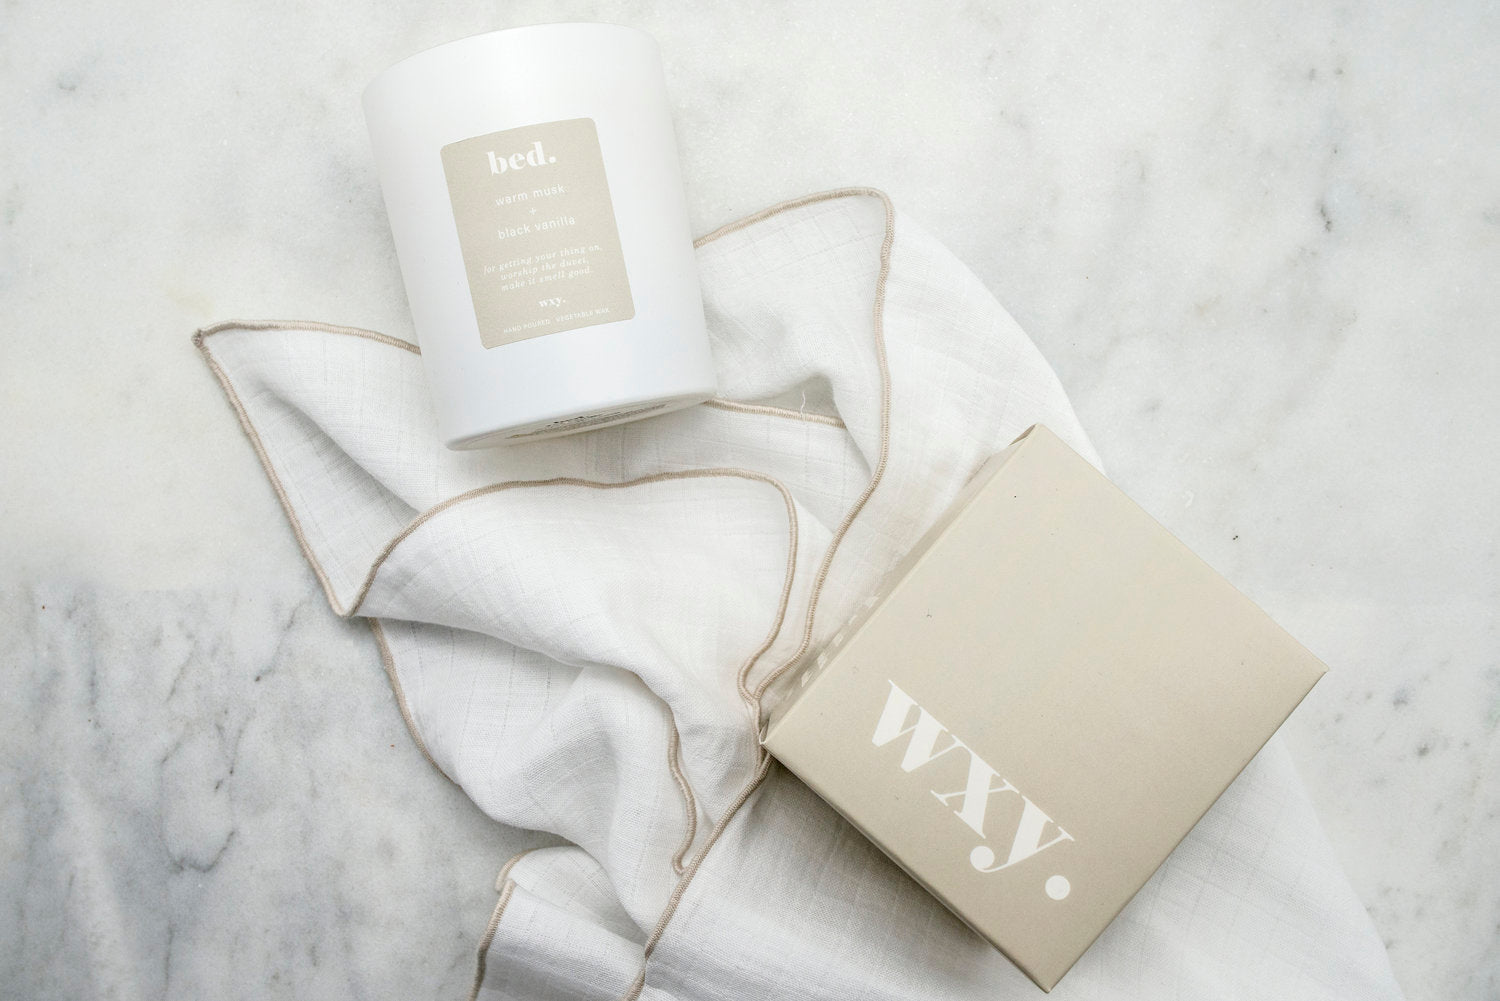 WXY 'BED' CANDLE - Large